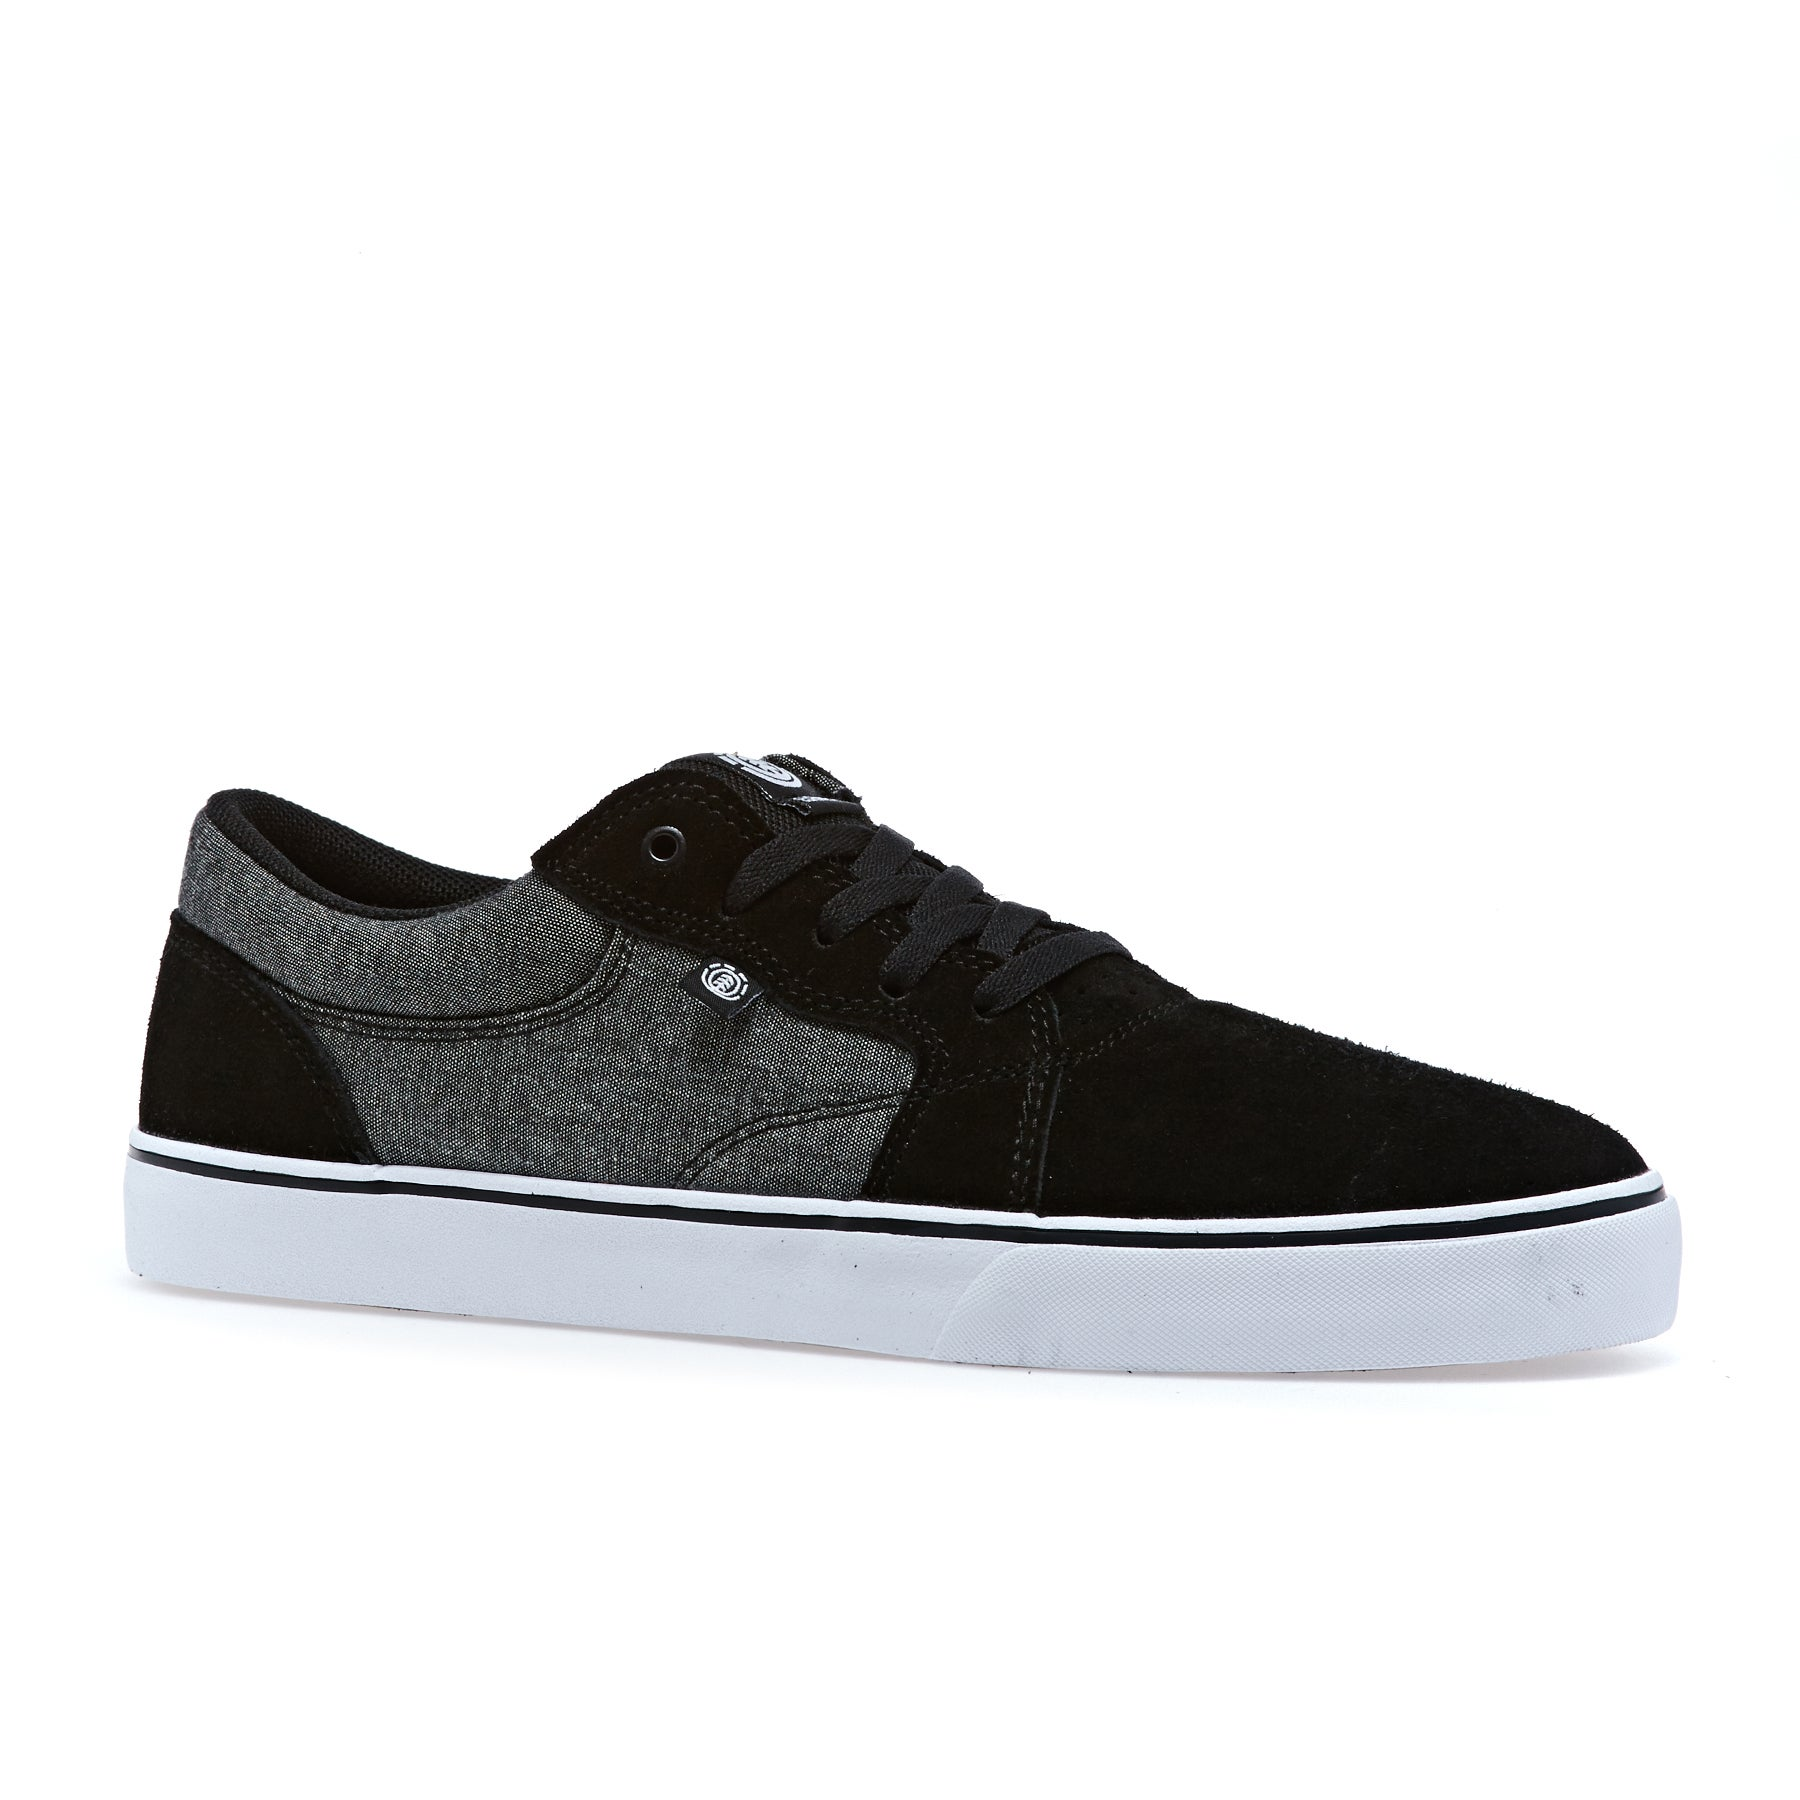 Element Wasso Shoes - Black Chambray